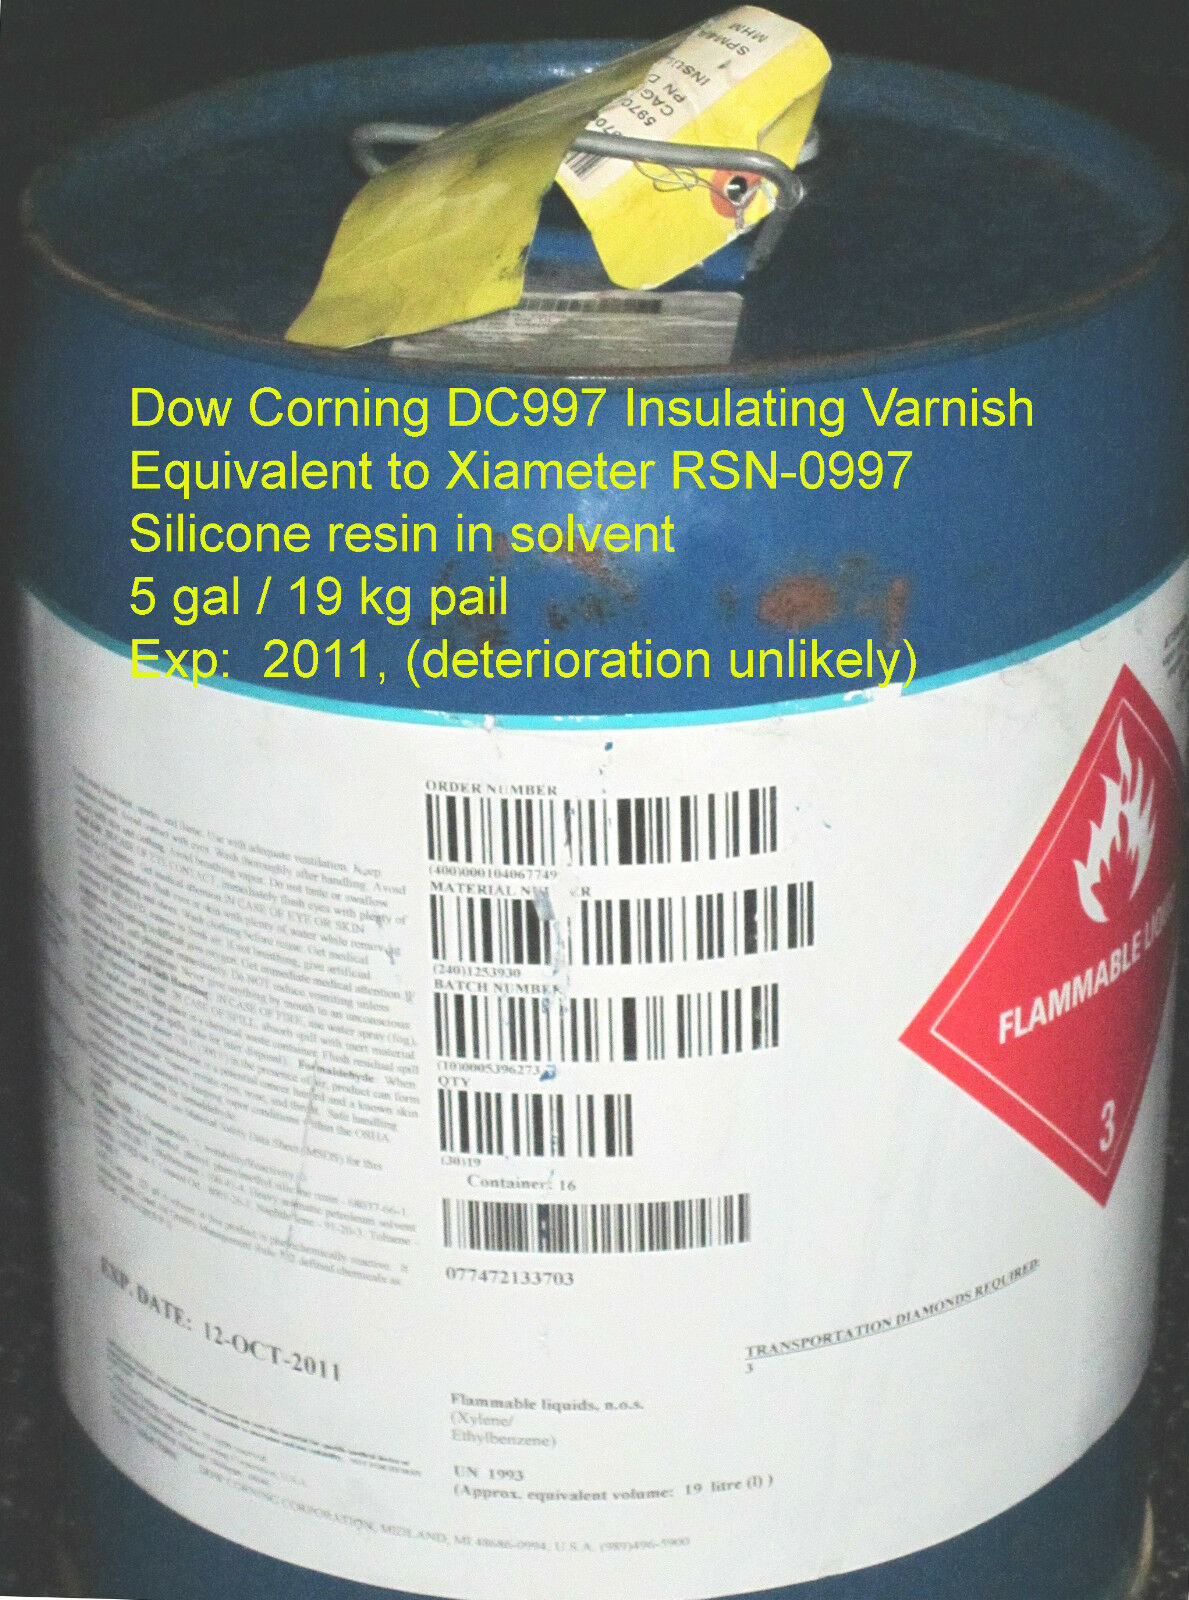 Electrical Insulating Varnish - Dow Corning DC997 / Xiameter RSN-0997, 25x 5 gal